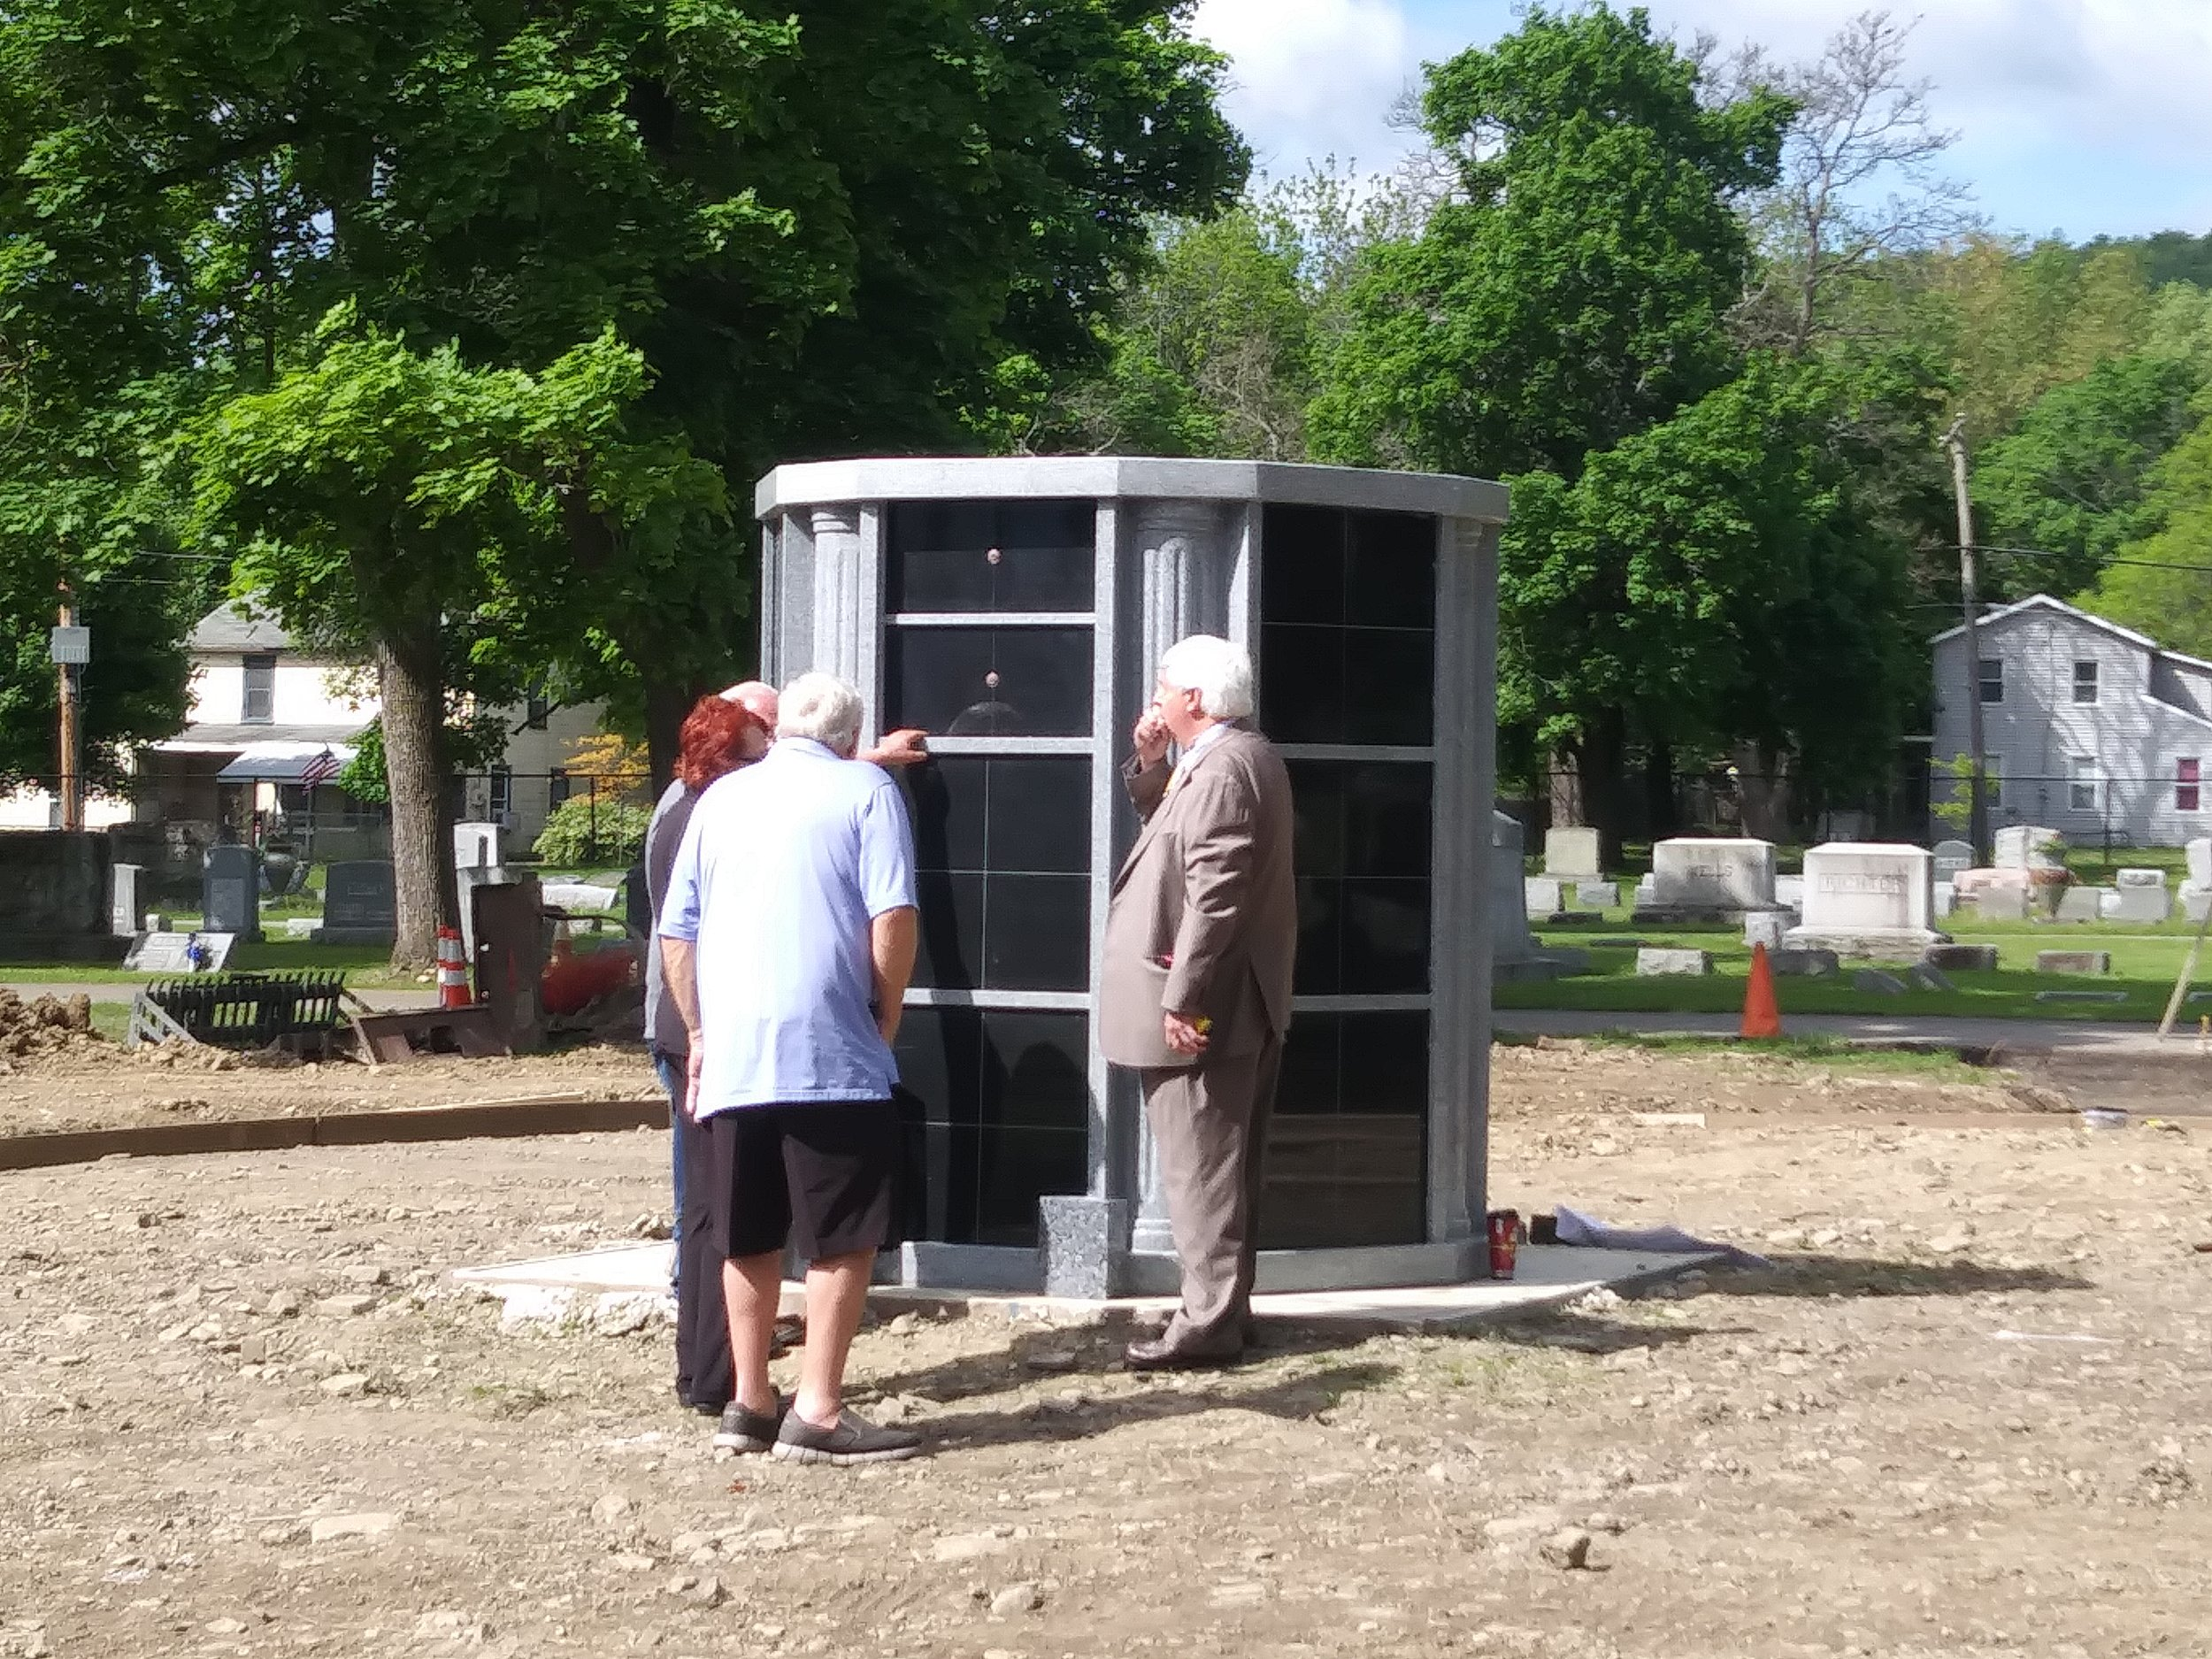 May 24th, the first placement of ashes in the Columbarium. The ashes are those of the Baynes Family, Walter, Helen and son, Christopher. Pictured are Winifred Baynes Burnham, husband Daniel Burnham and Funeral Director Jim Lynch from Lynch's Funeral Home.